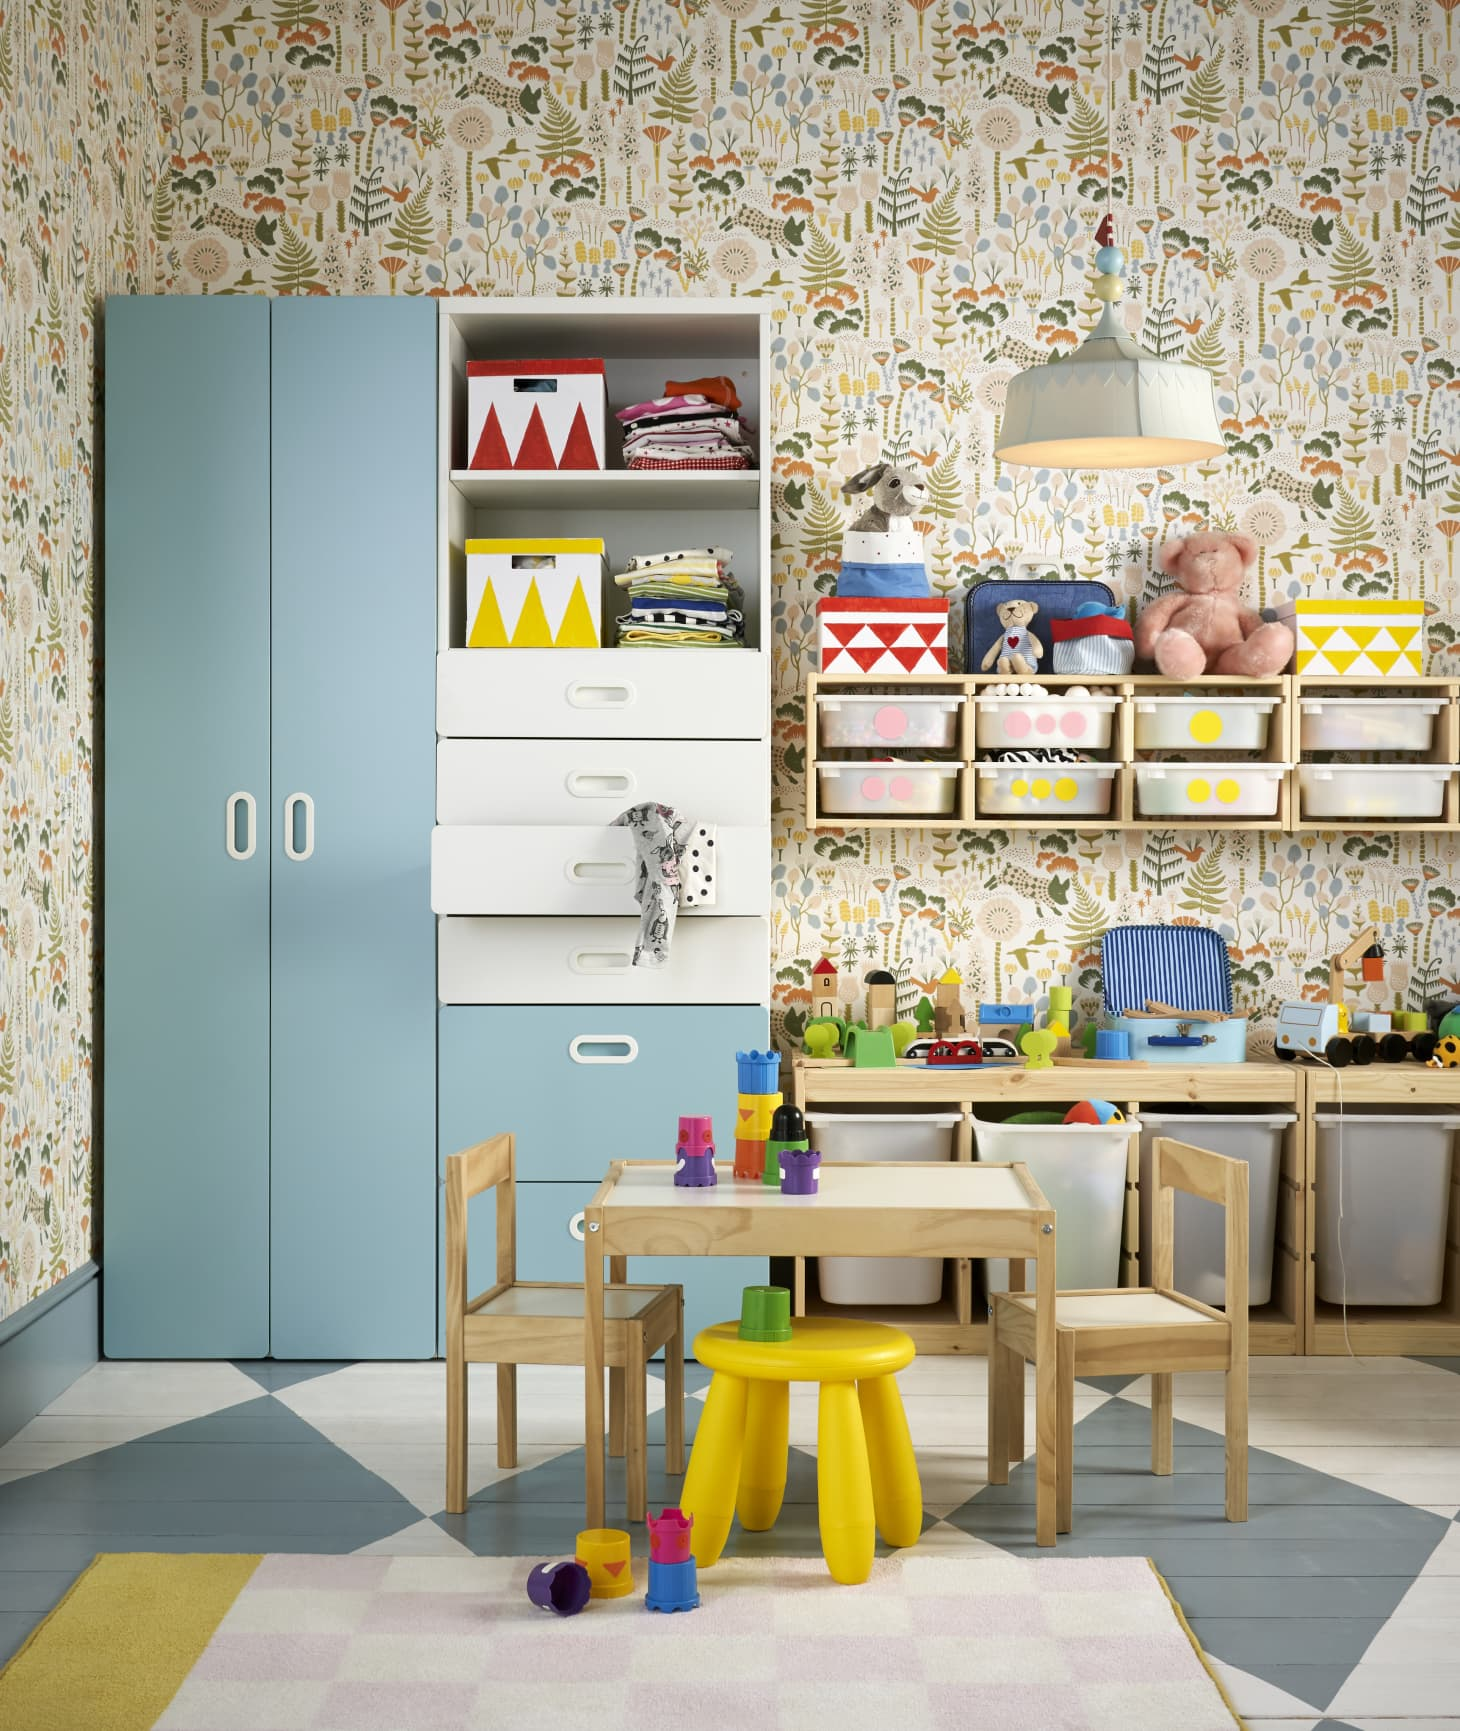 Ikea 2020 Catalog Best New Home Products Apartment Therapy